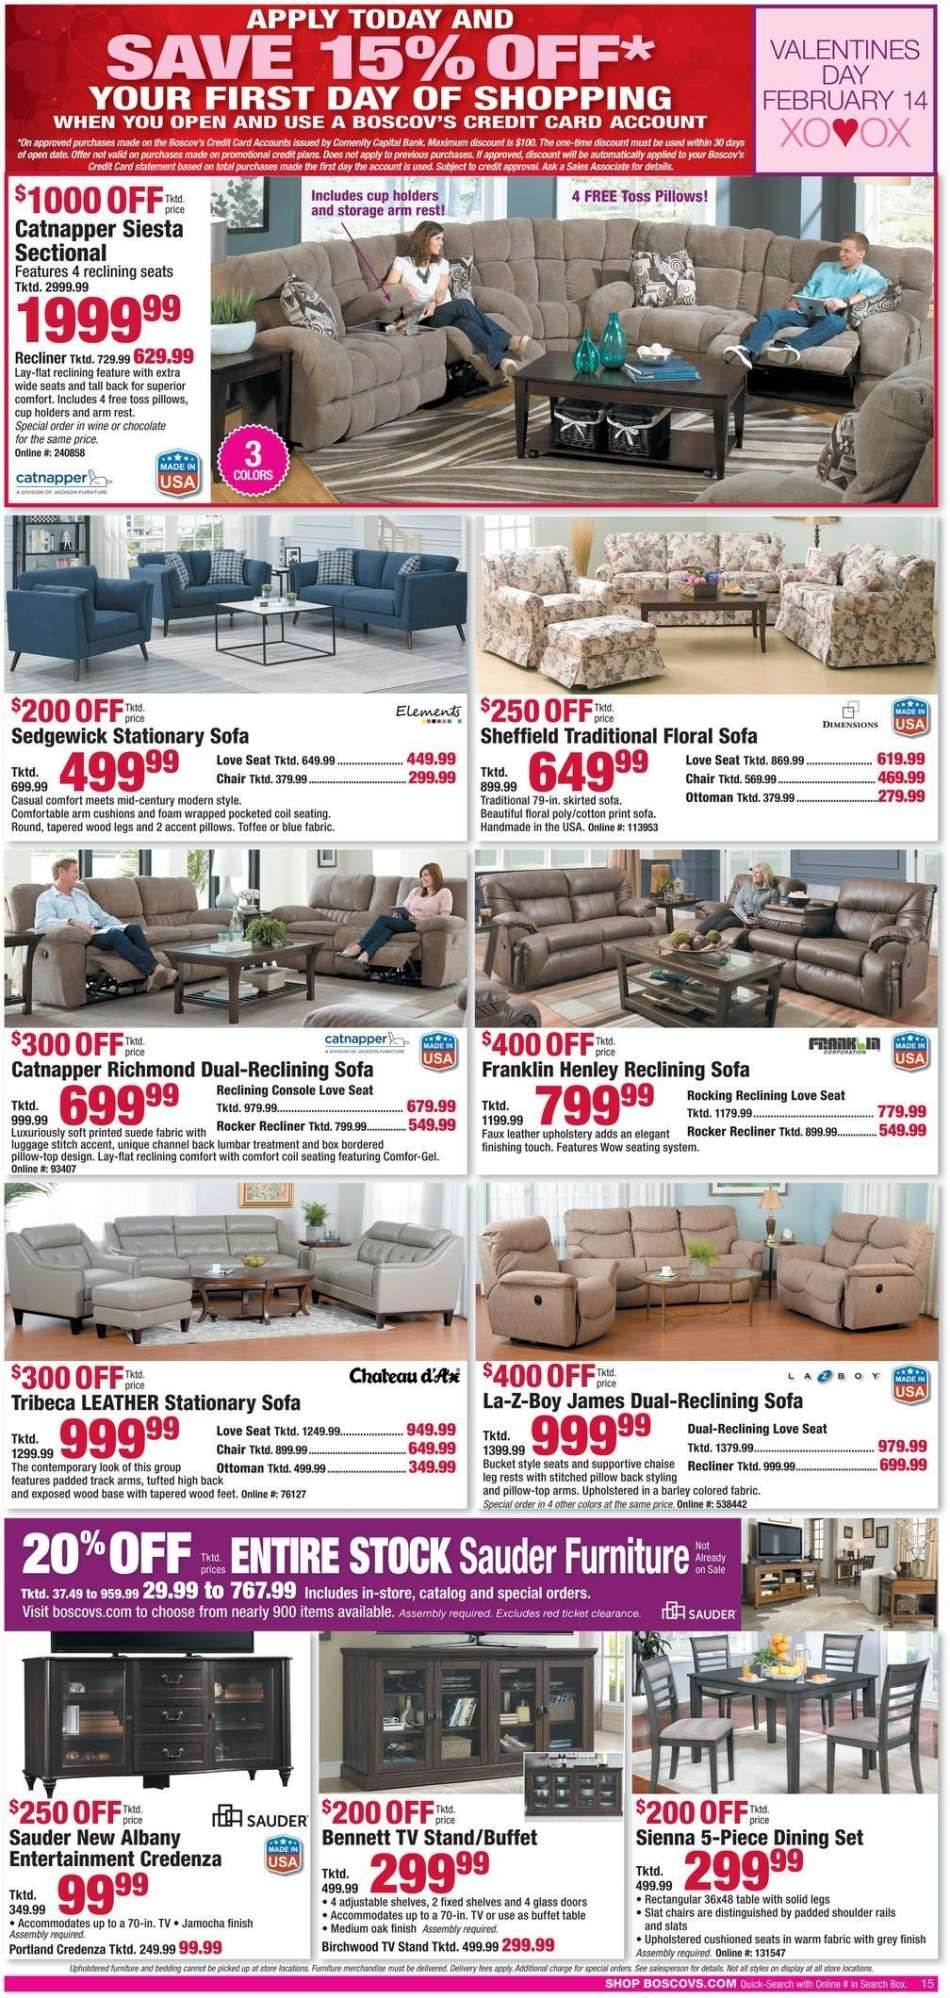 Marvelous Boscovs Flyer 02 10 2019 02 18 2019 Weekly Ads Us Gmtry Best Dining Table And Chair Ideas Images Gmtryco